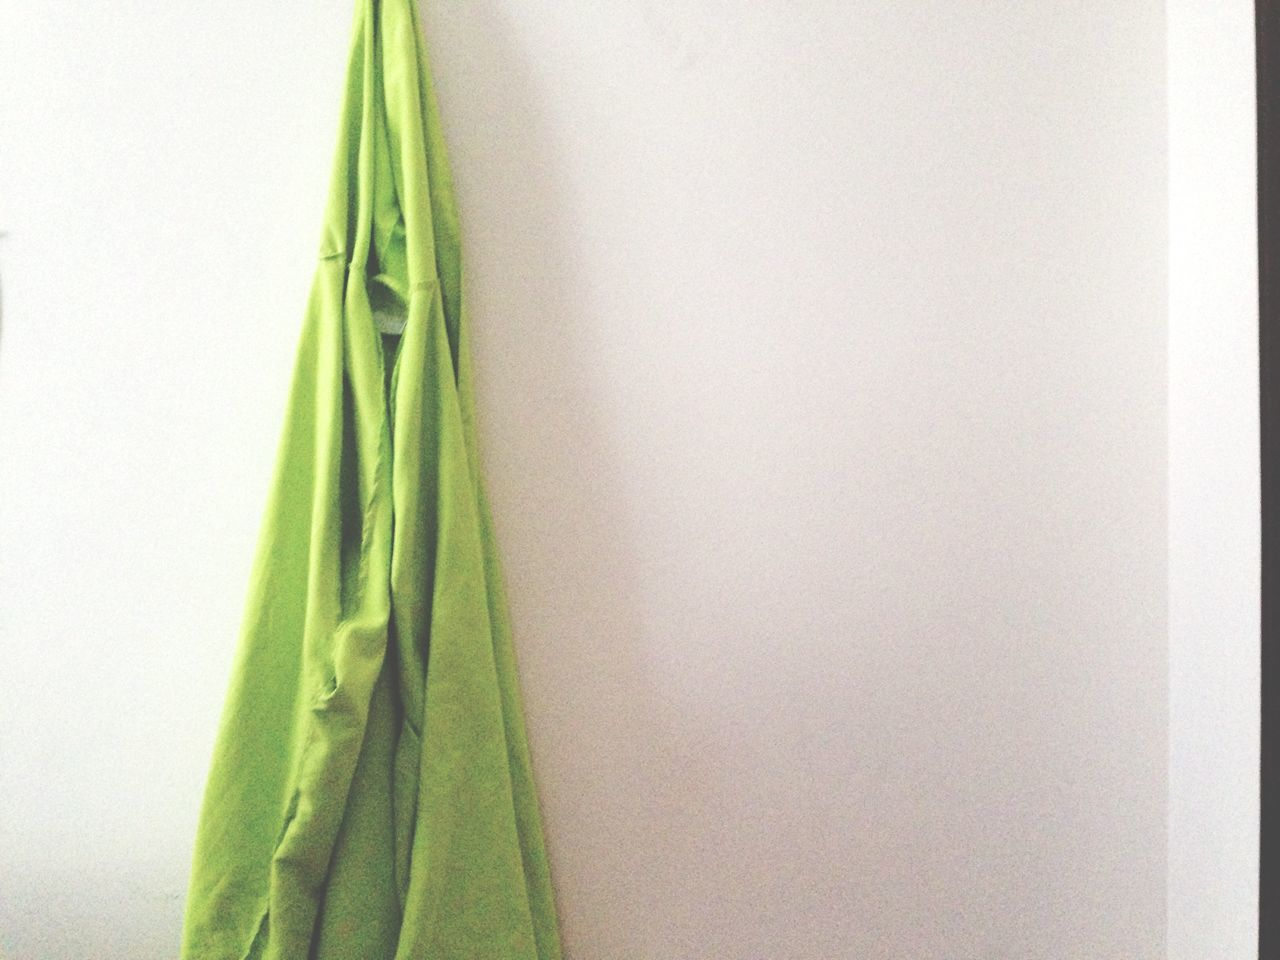 Close-Up Of Cloth Hanging On Wall